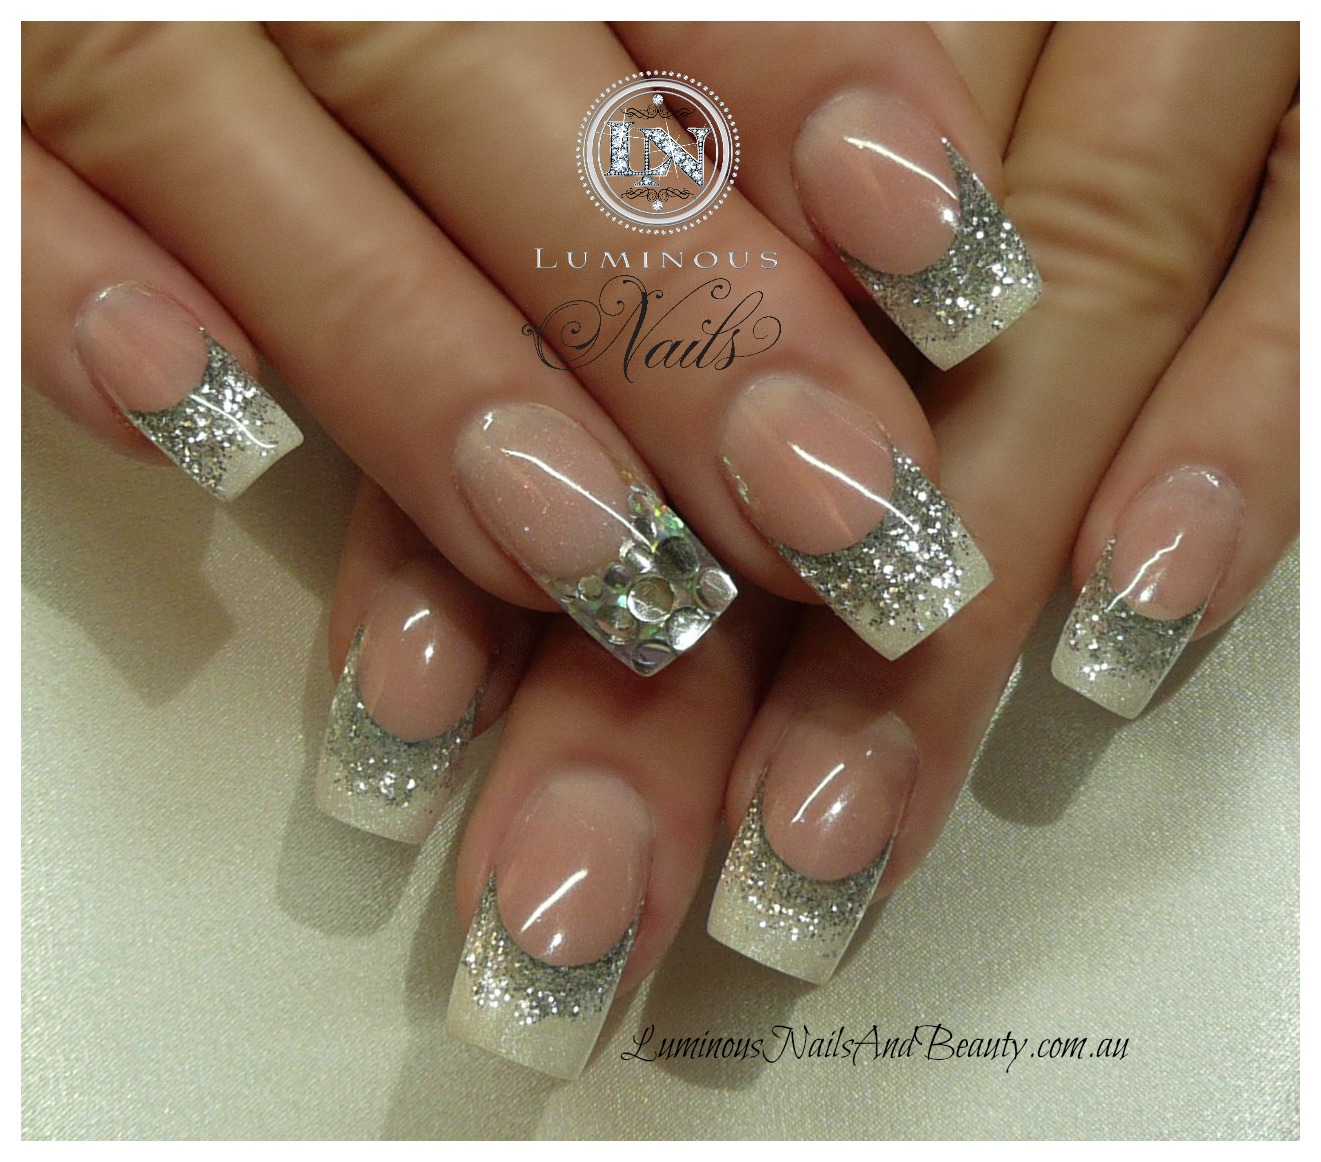 Wedding Nail Art Designs Gallery: Luminous Nails: September 2012